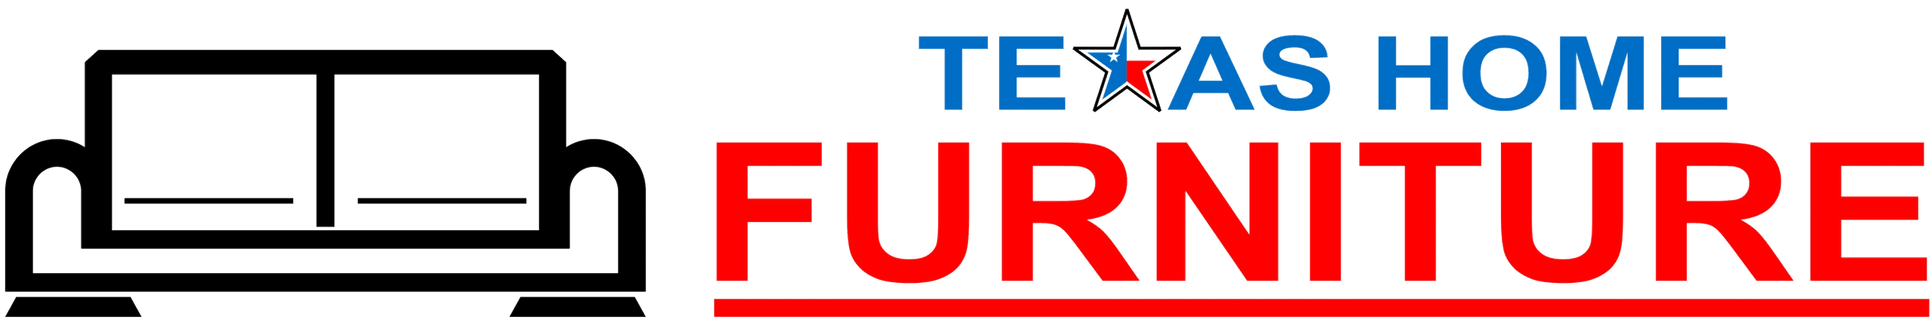 WELCOME TO TEXAS HOME FURNITURE